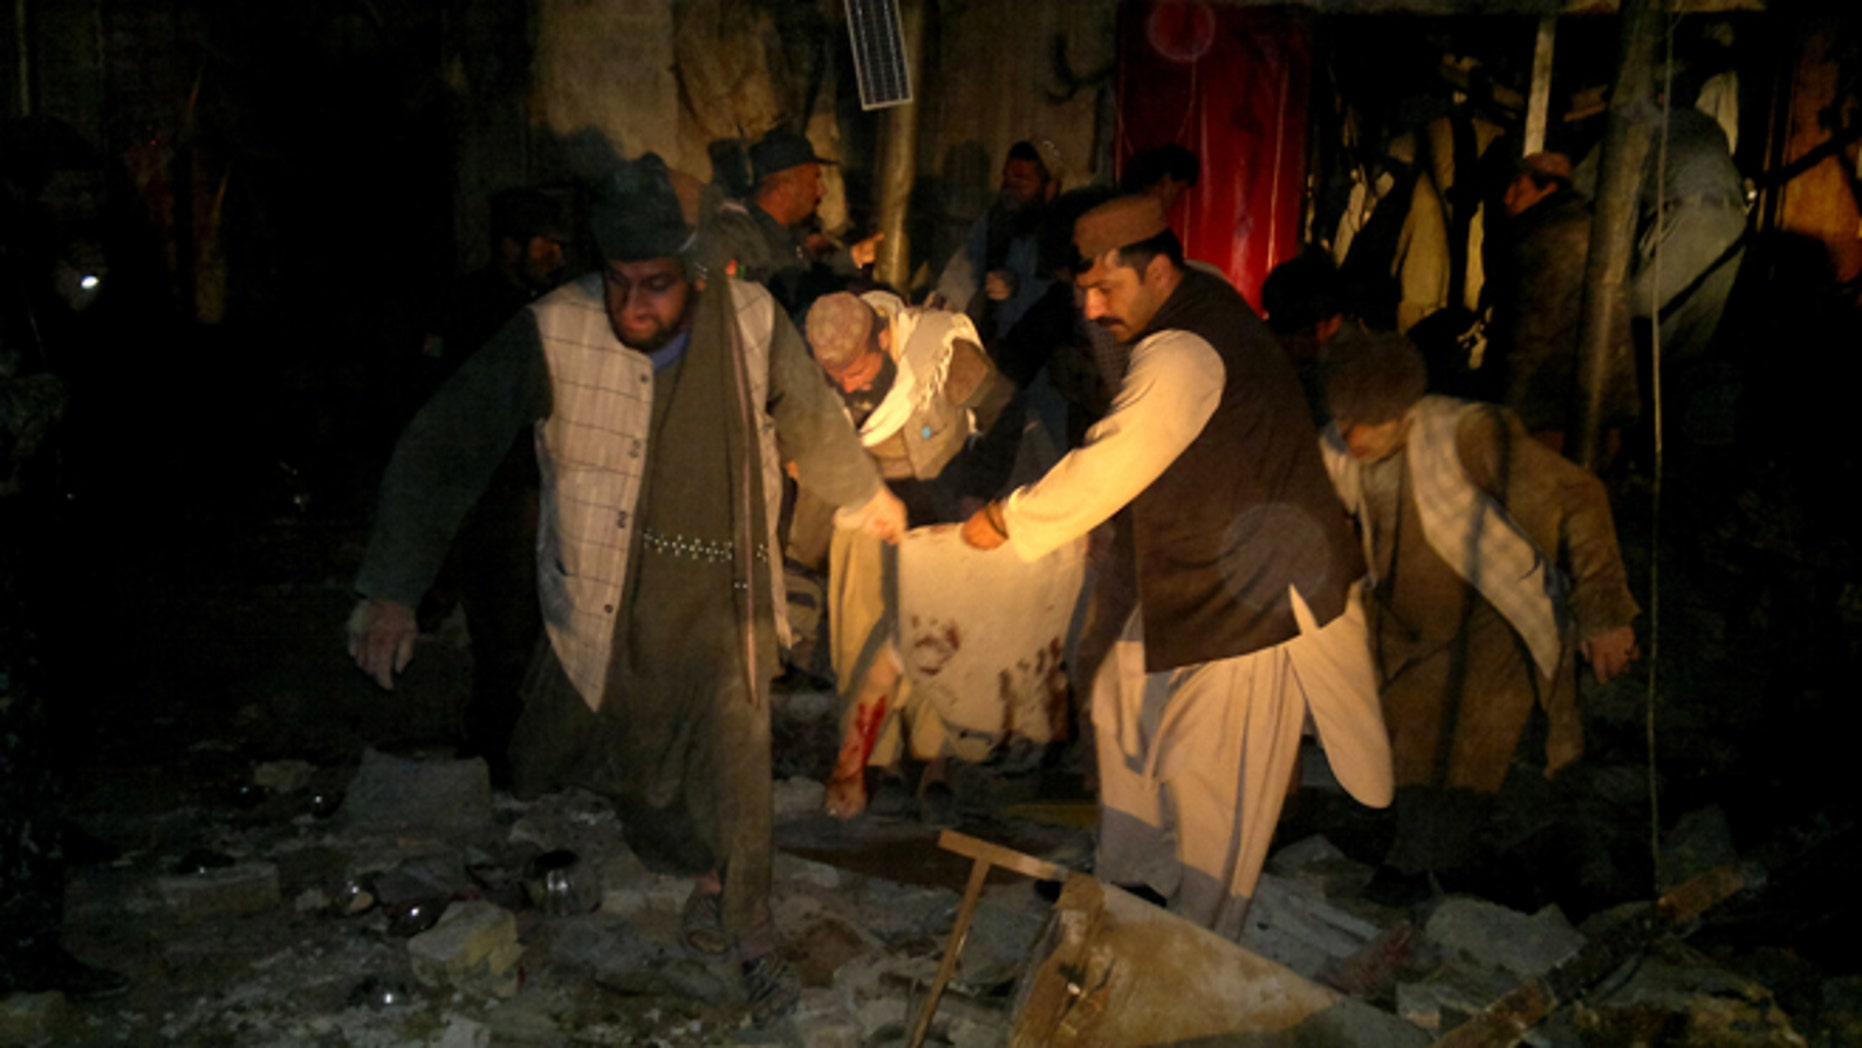 Feb. 25, 2014: Afghans carry the dead body of a civilian after a suicide attack in Trin Kot, capital of Uruzgan province,  Afghanistan.